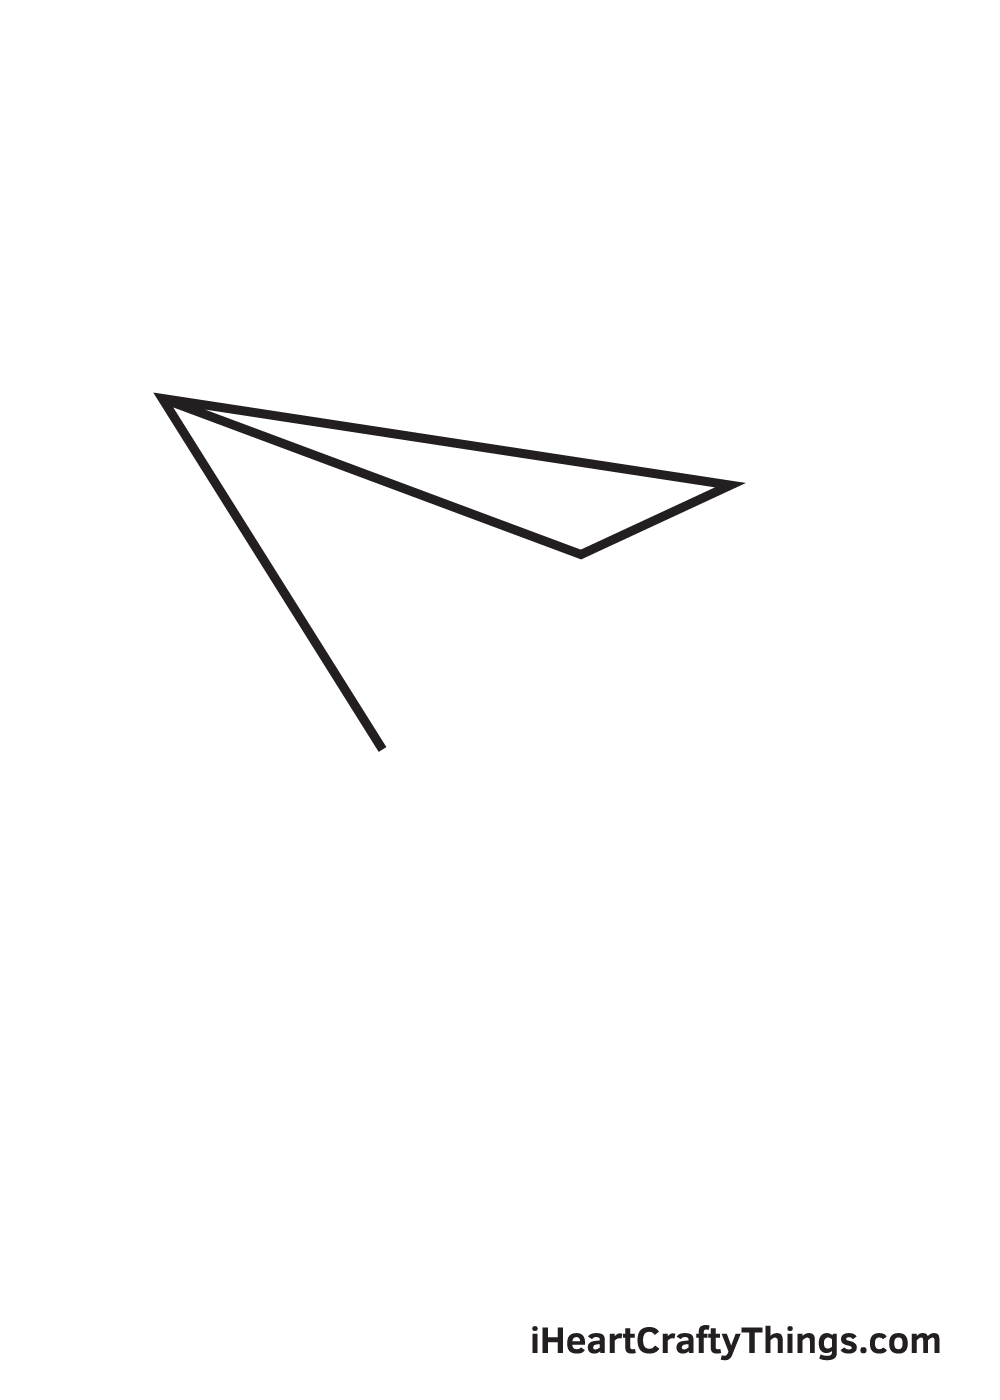 paper airplane drawing step 4